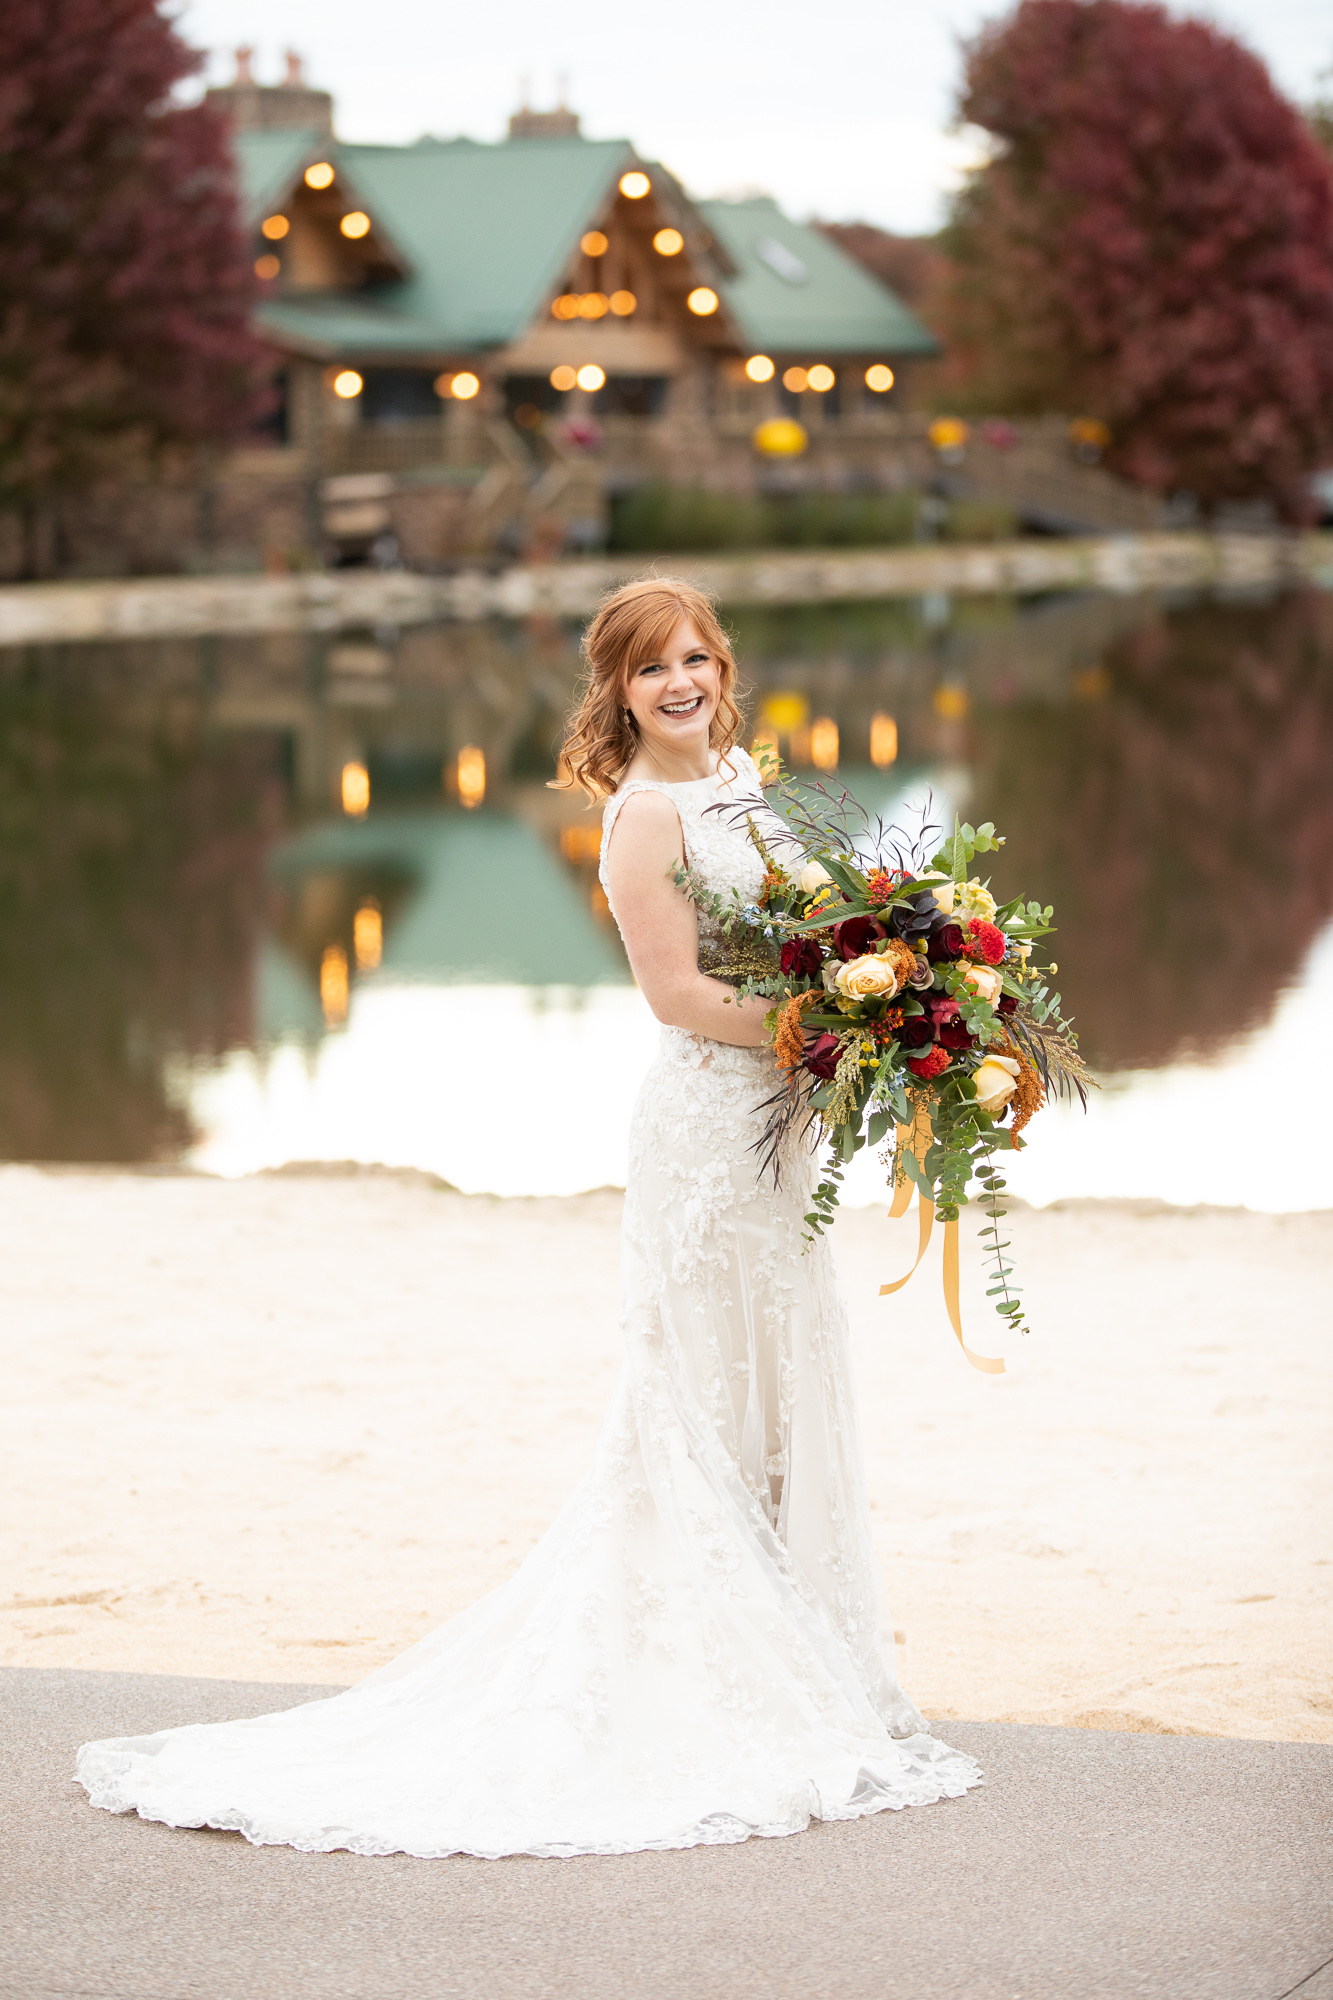 Bride at Autumn styled shoot at The Gathering Place with Bridal Elegance wedding dress and hair by Ashley's Mobile Studio.